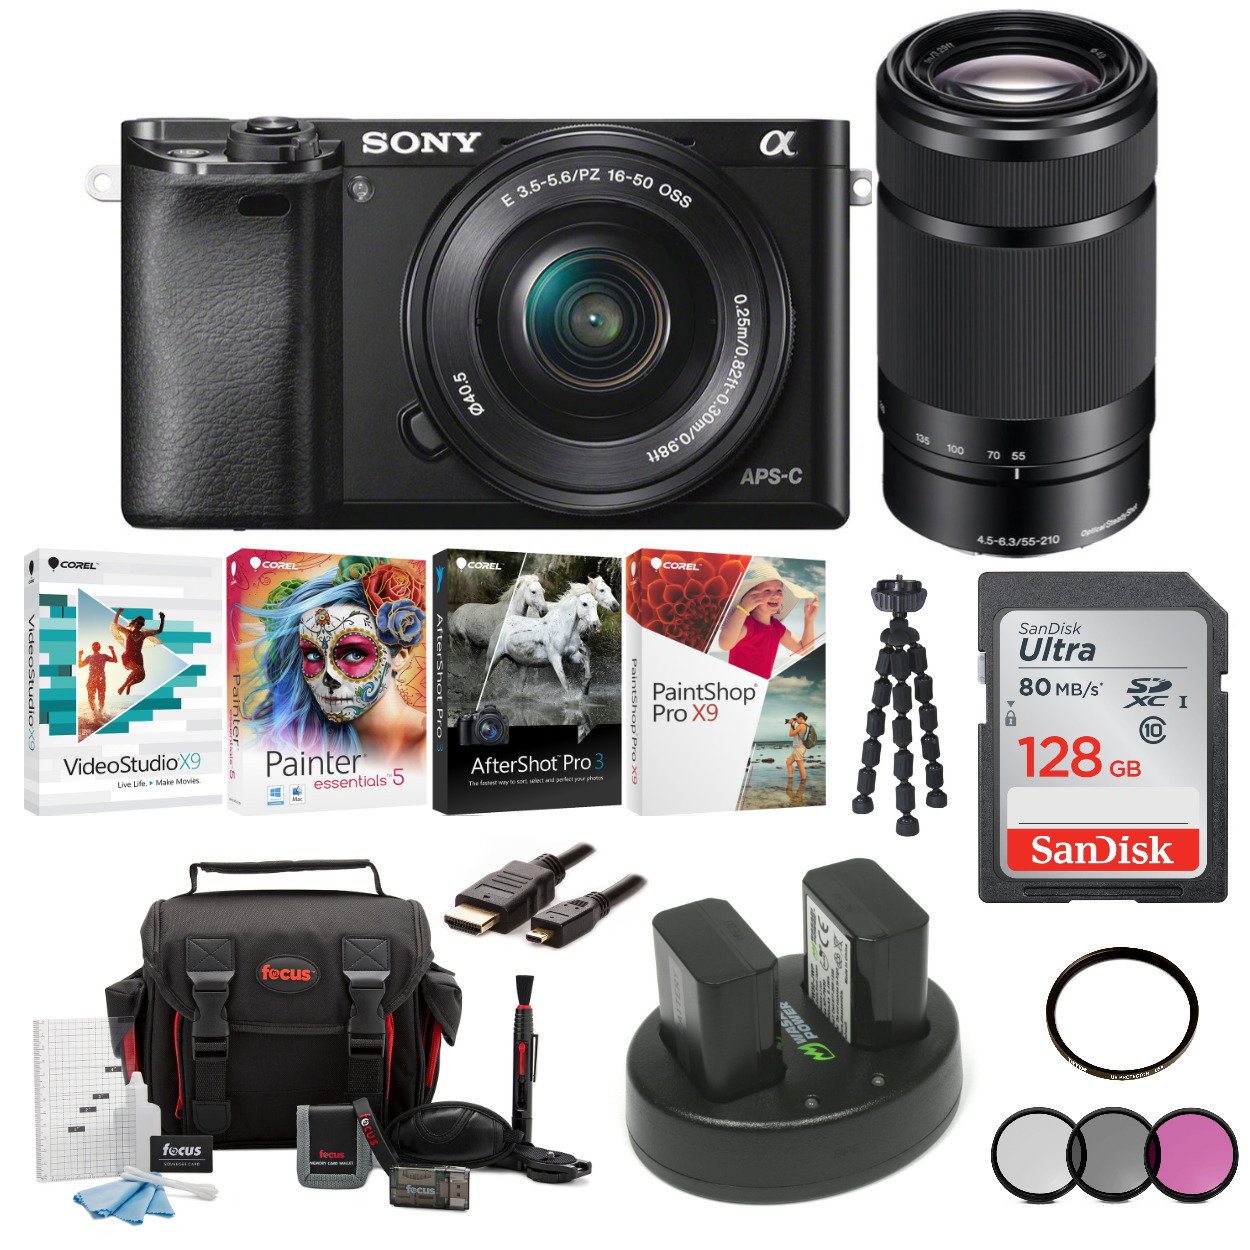 Sony Alpha a6000 Mirrorless Camera (Black) w/ 16-50mm and 55-210mm Lenses + 128GB SD Card + Software Kit